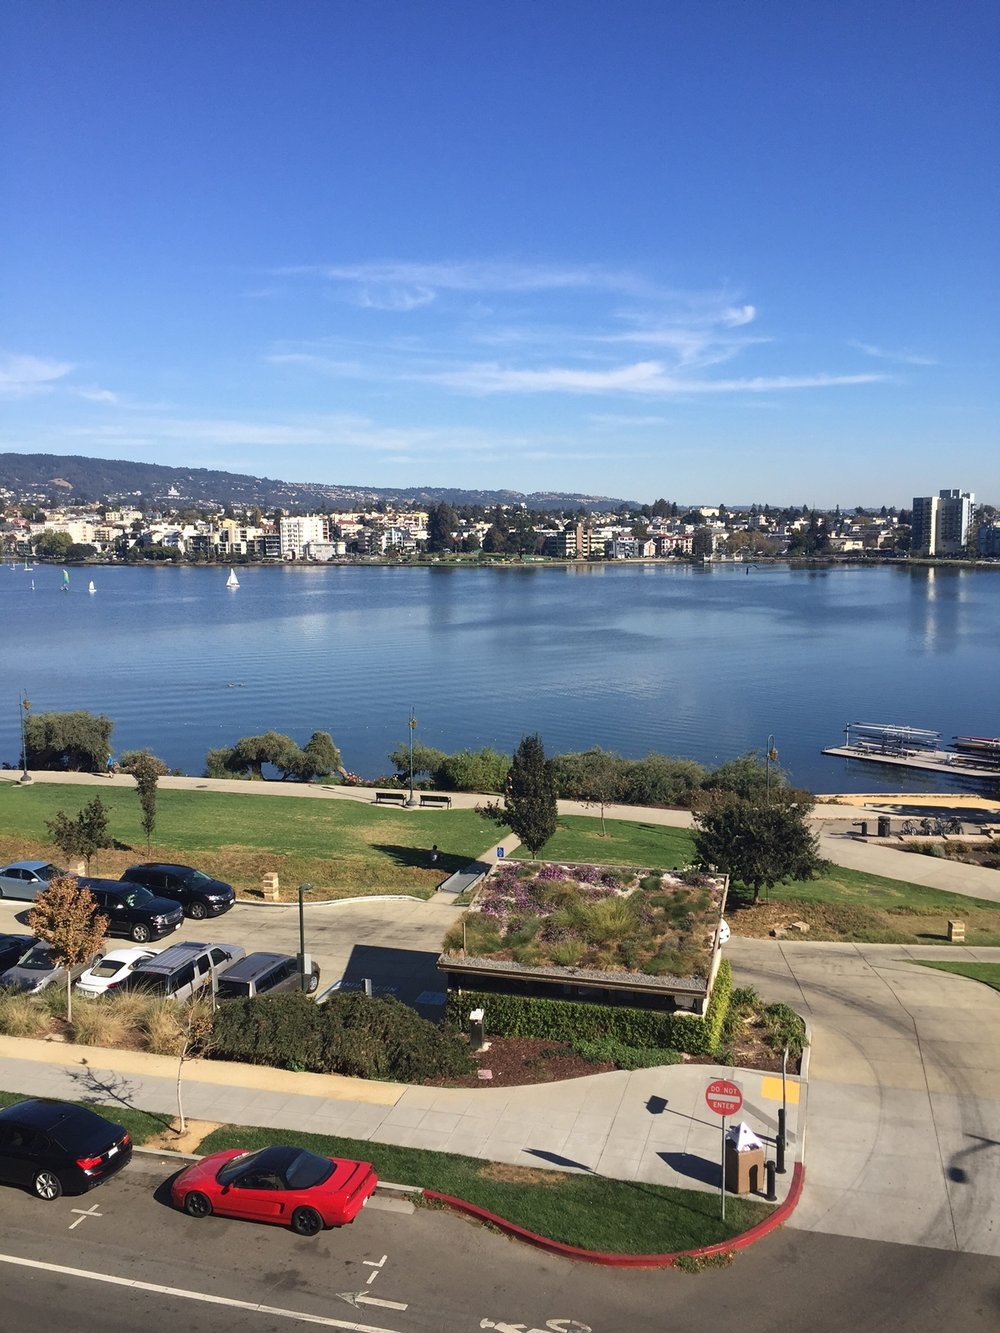 View of Lake Merritt from the 4th floor terrace of the Scottish Rite Center